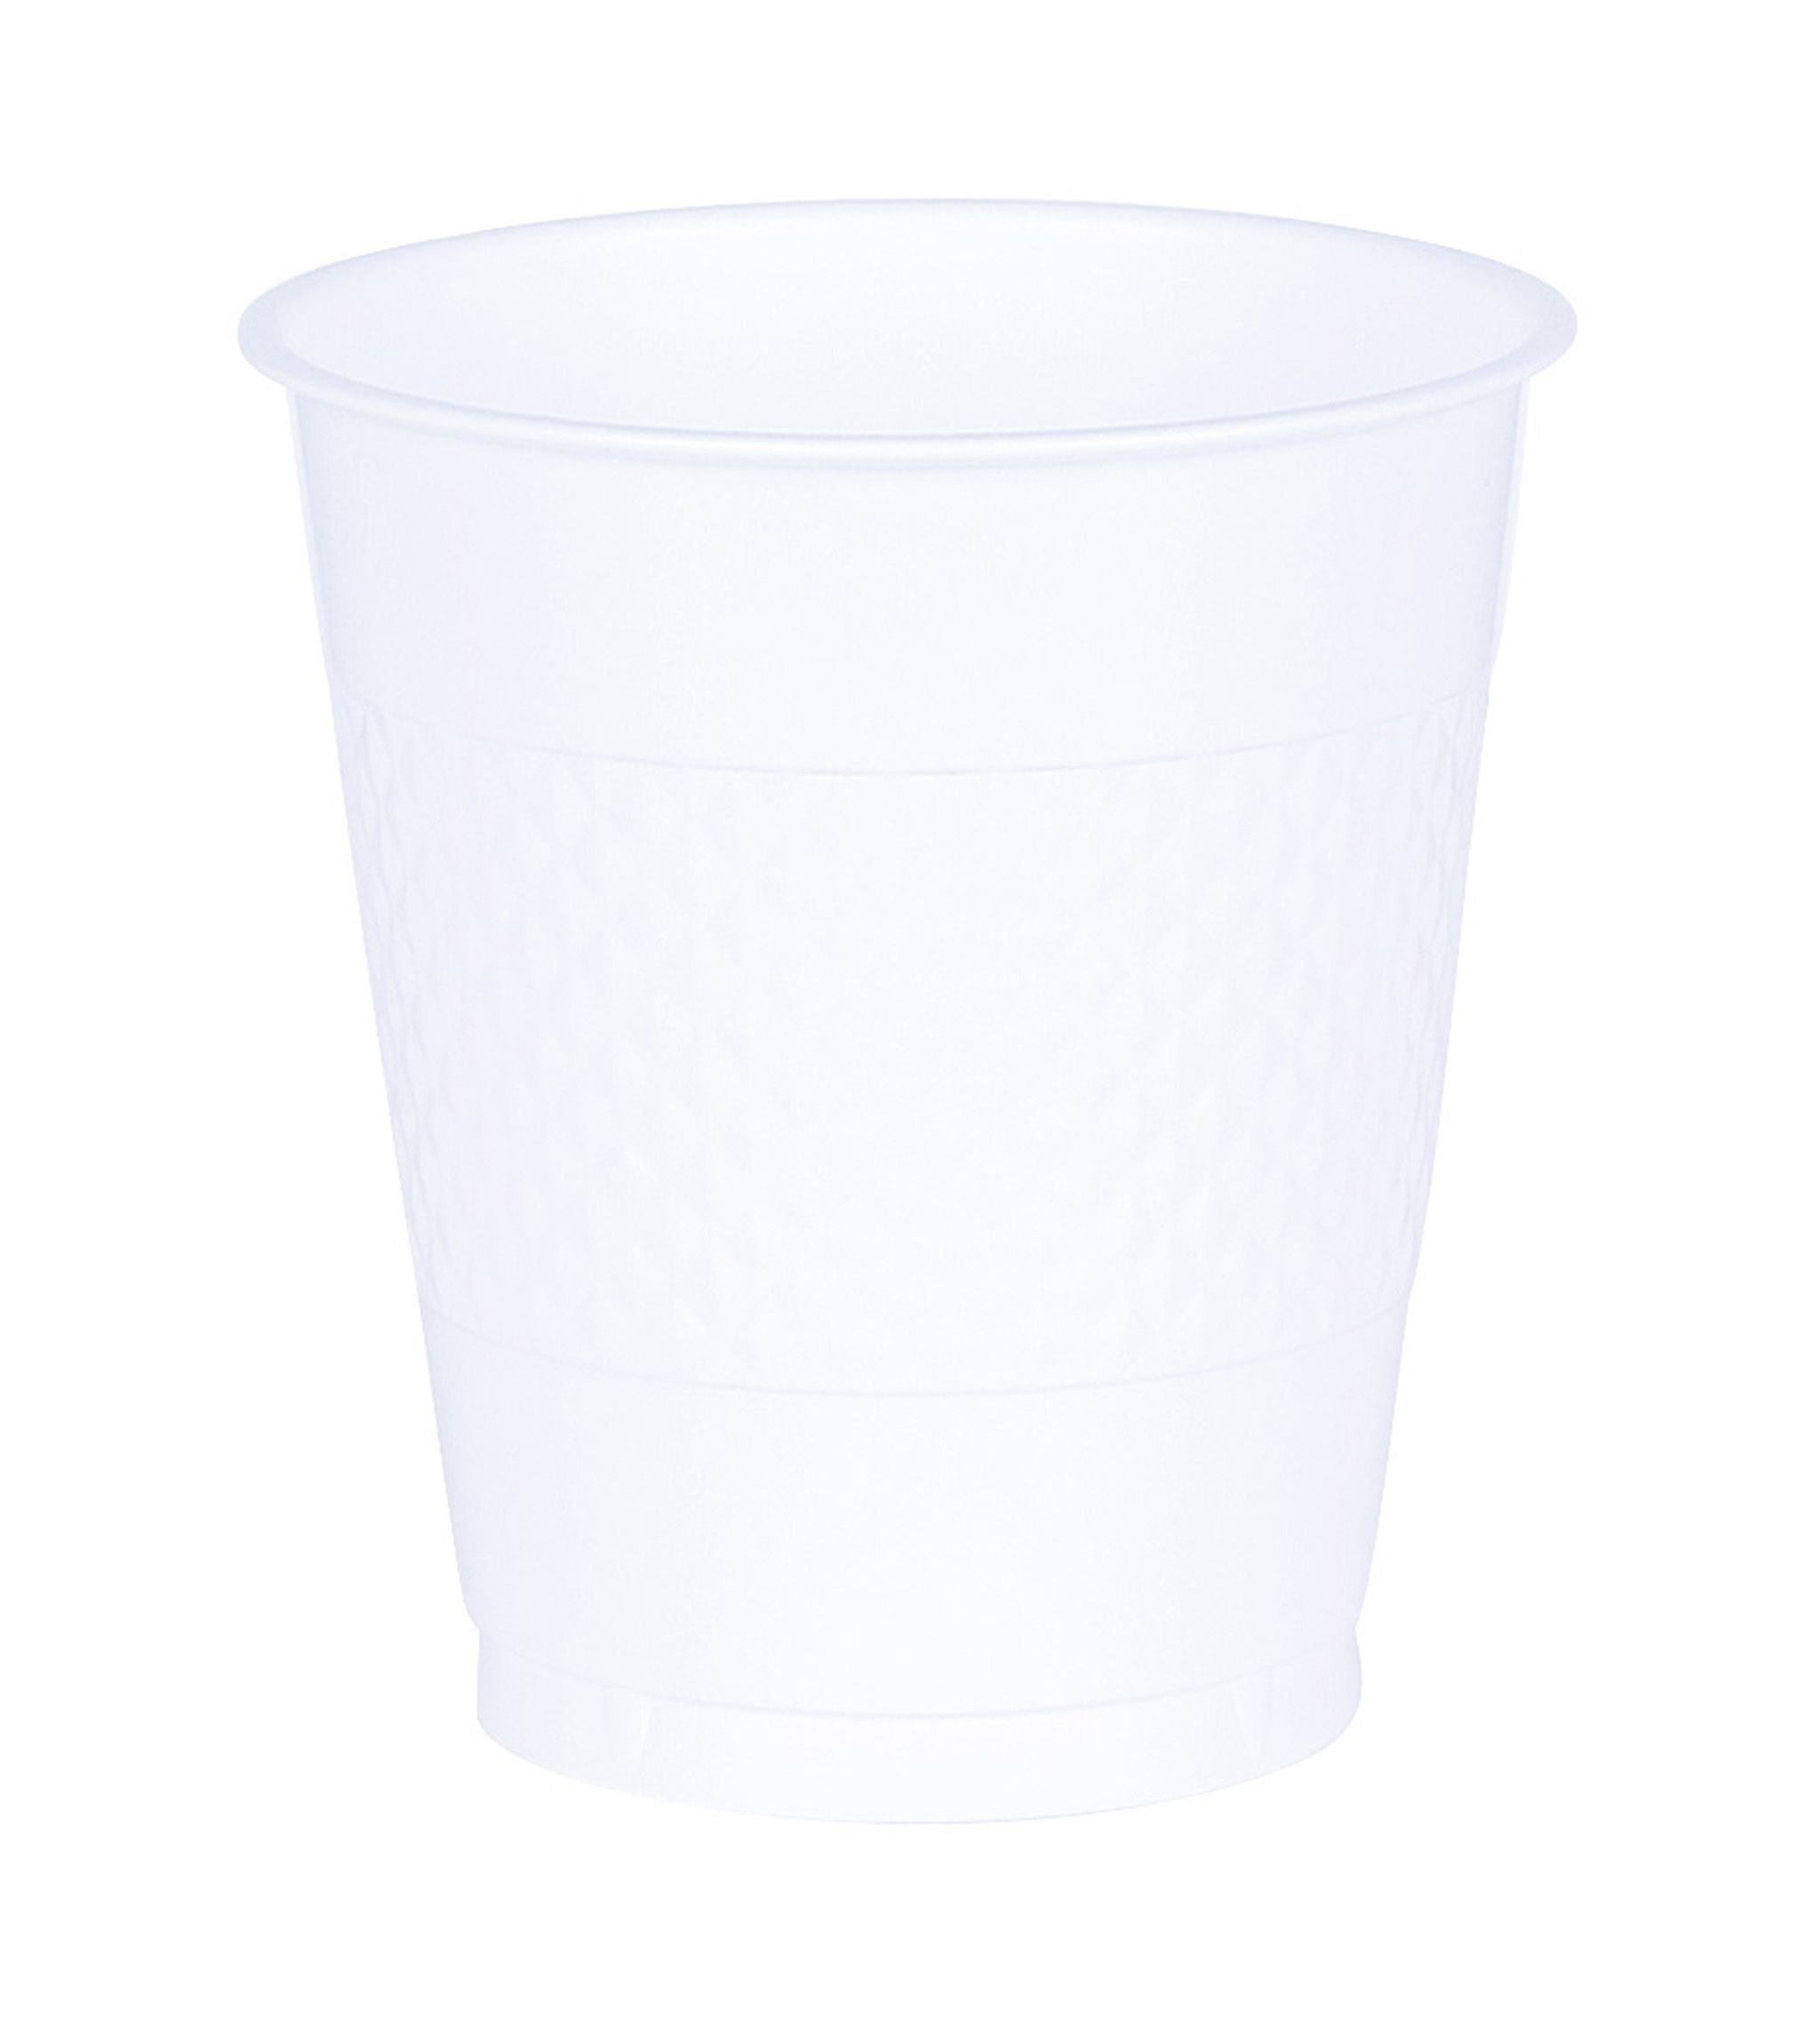 White Plastic Cups | 12 oz. | Party Supply | 200 ct.